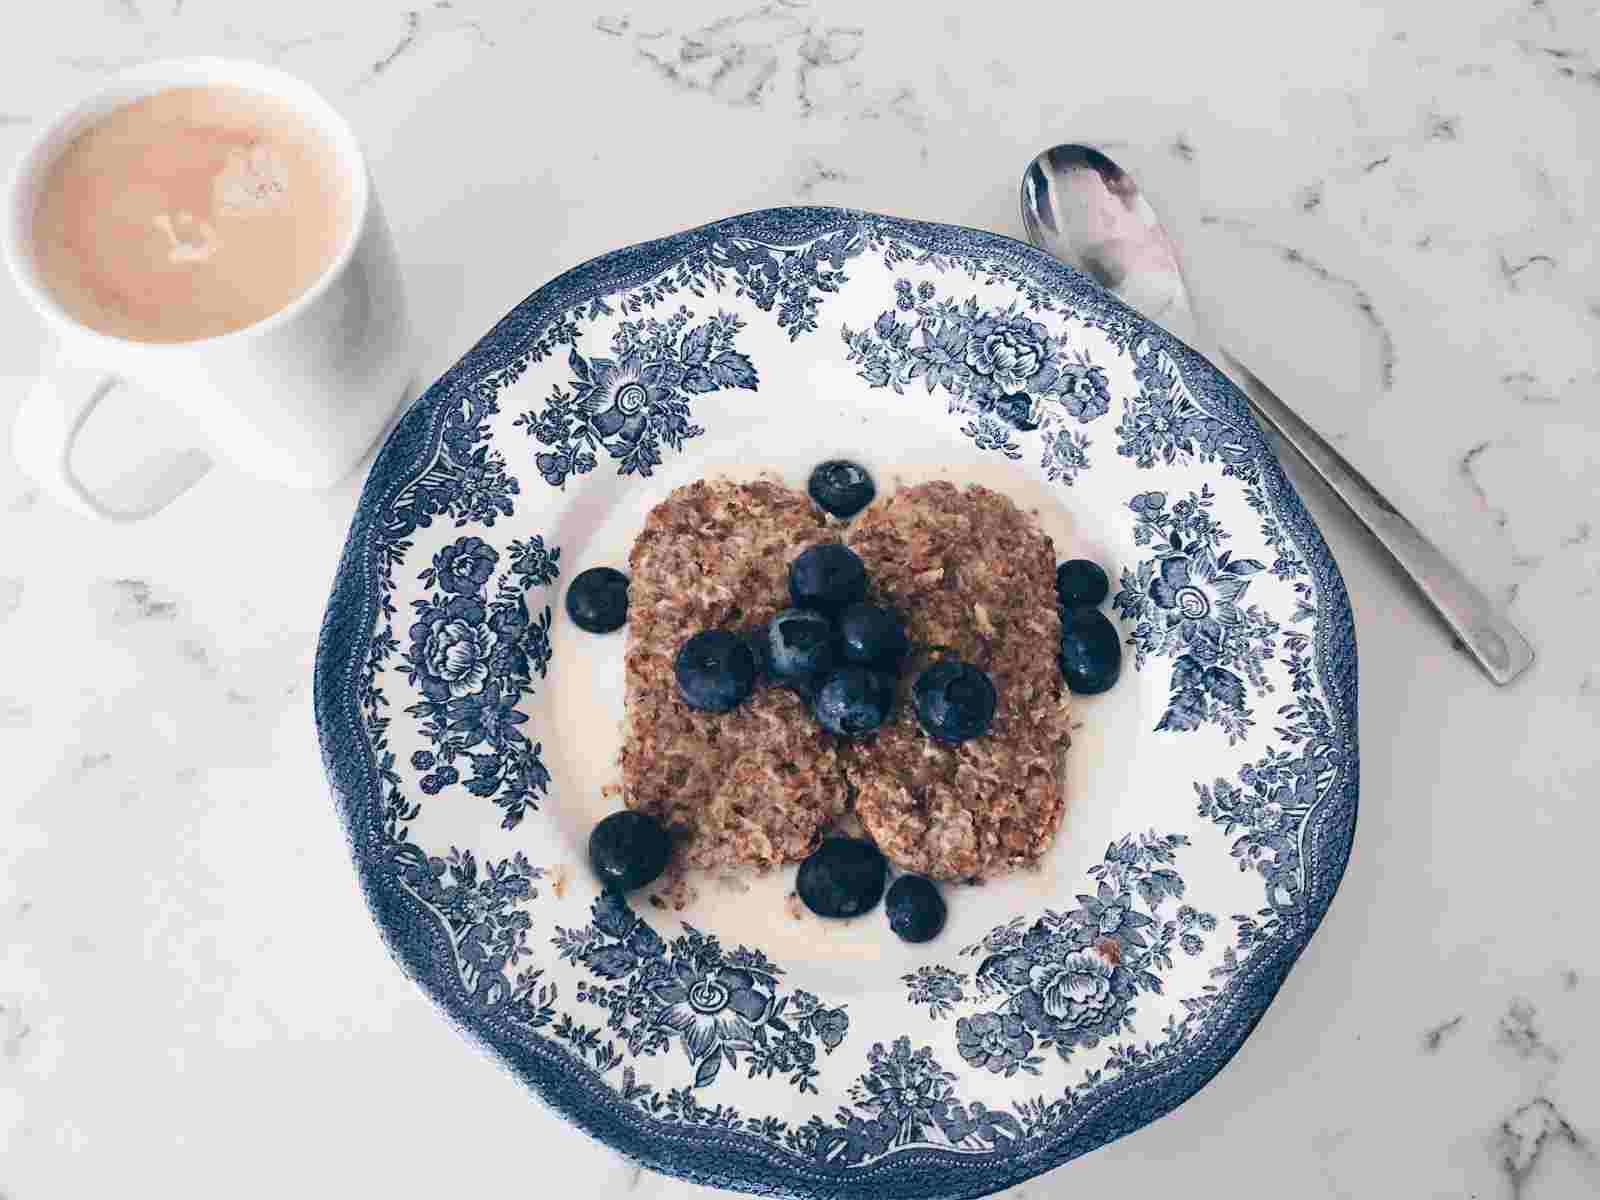 Weetabix and blueberries